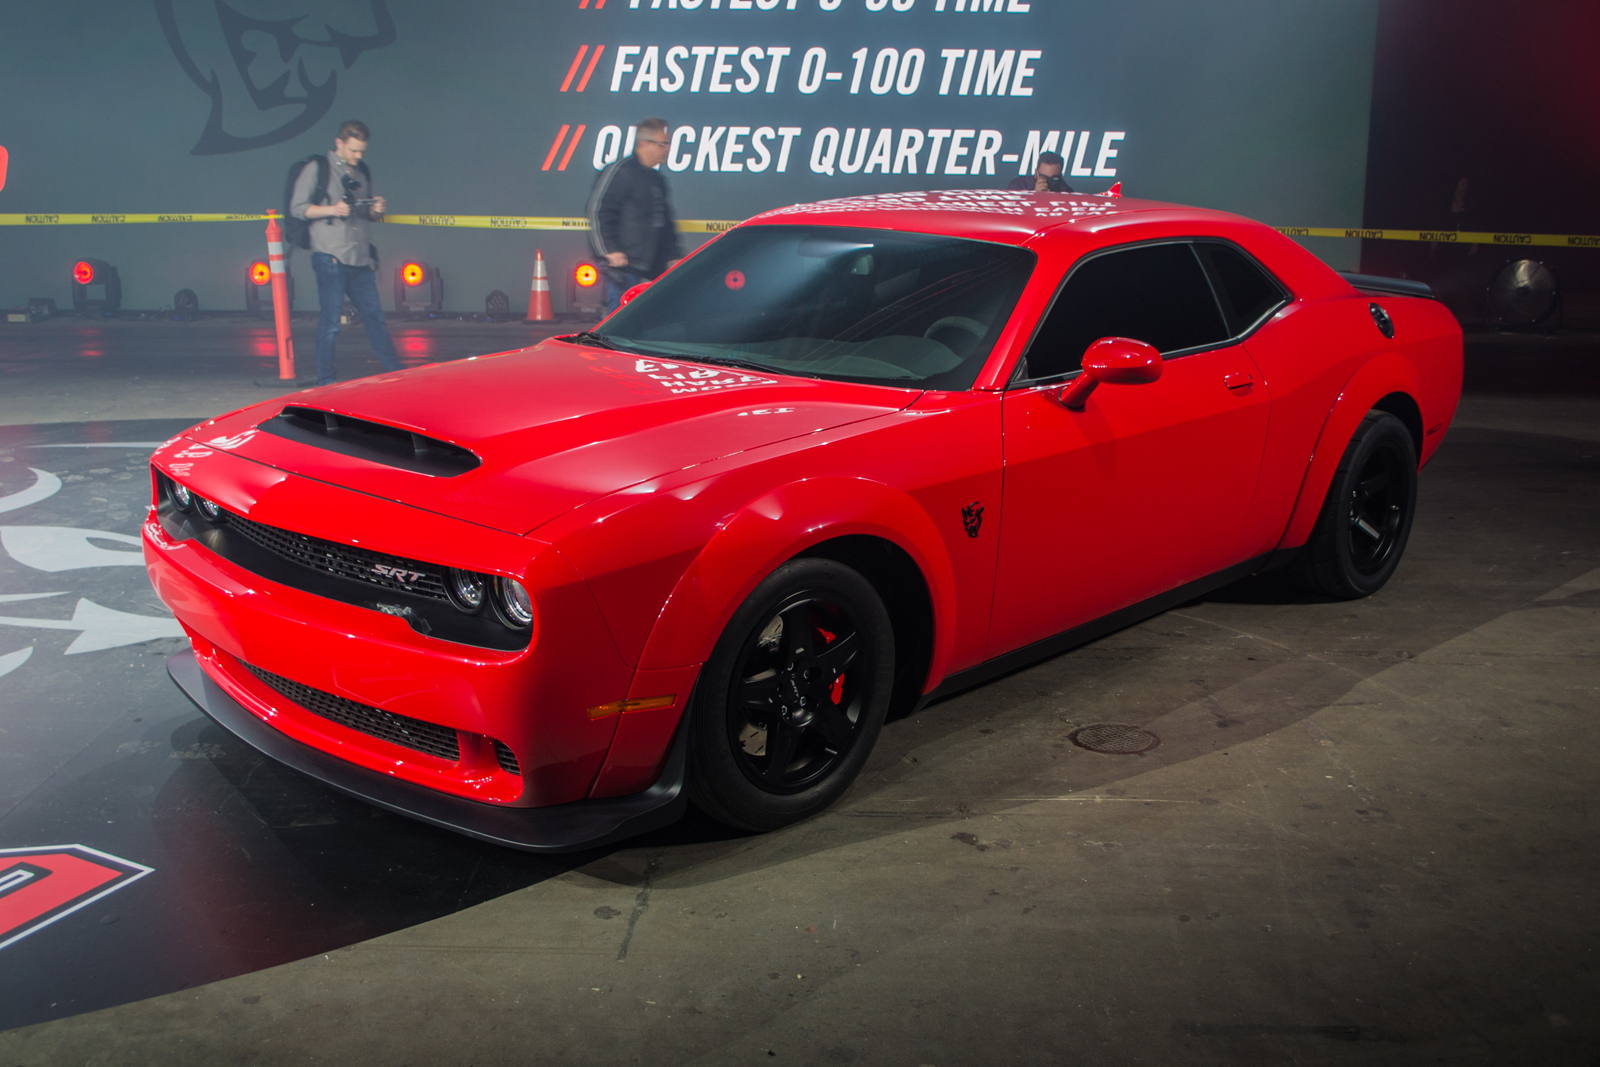 Top 10 Things You Need To Know About The 2018 Dodge Demon